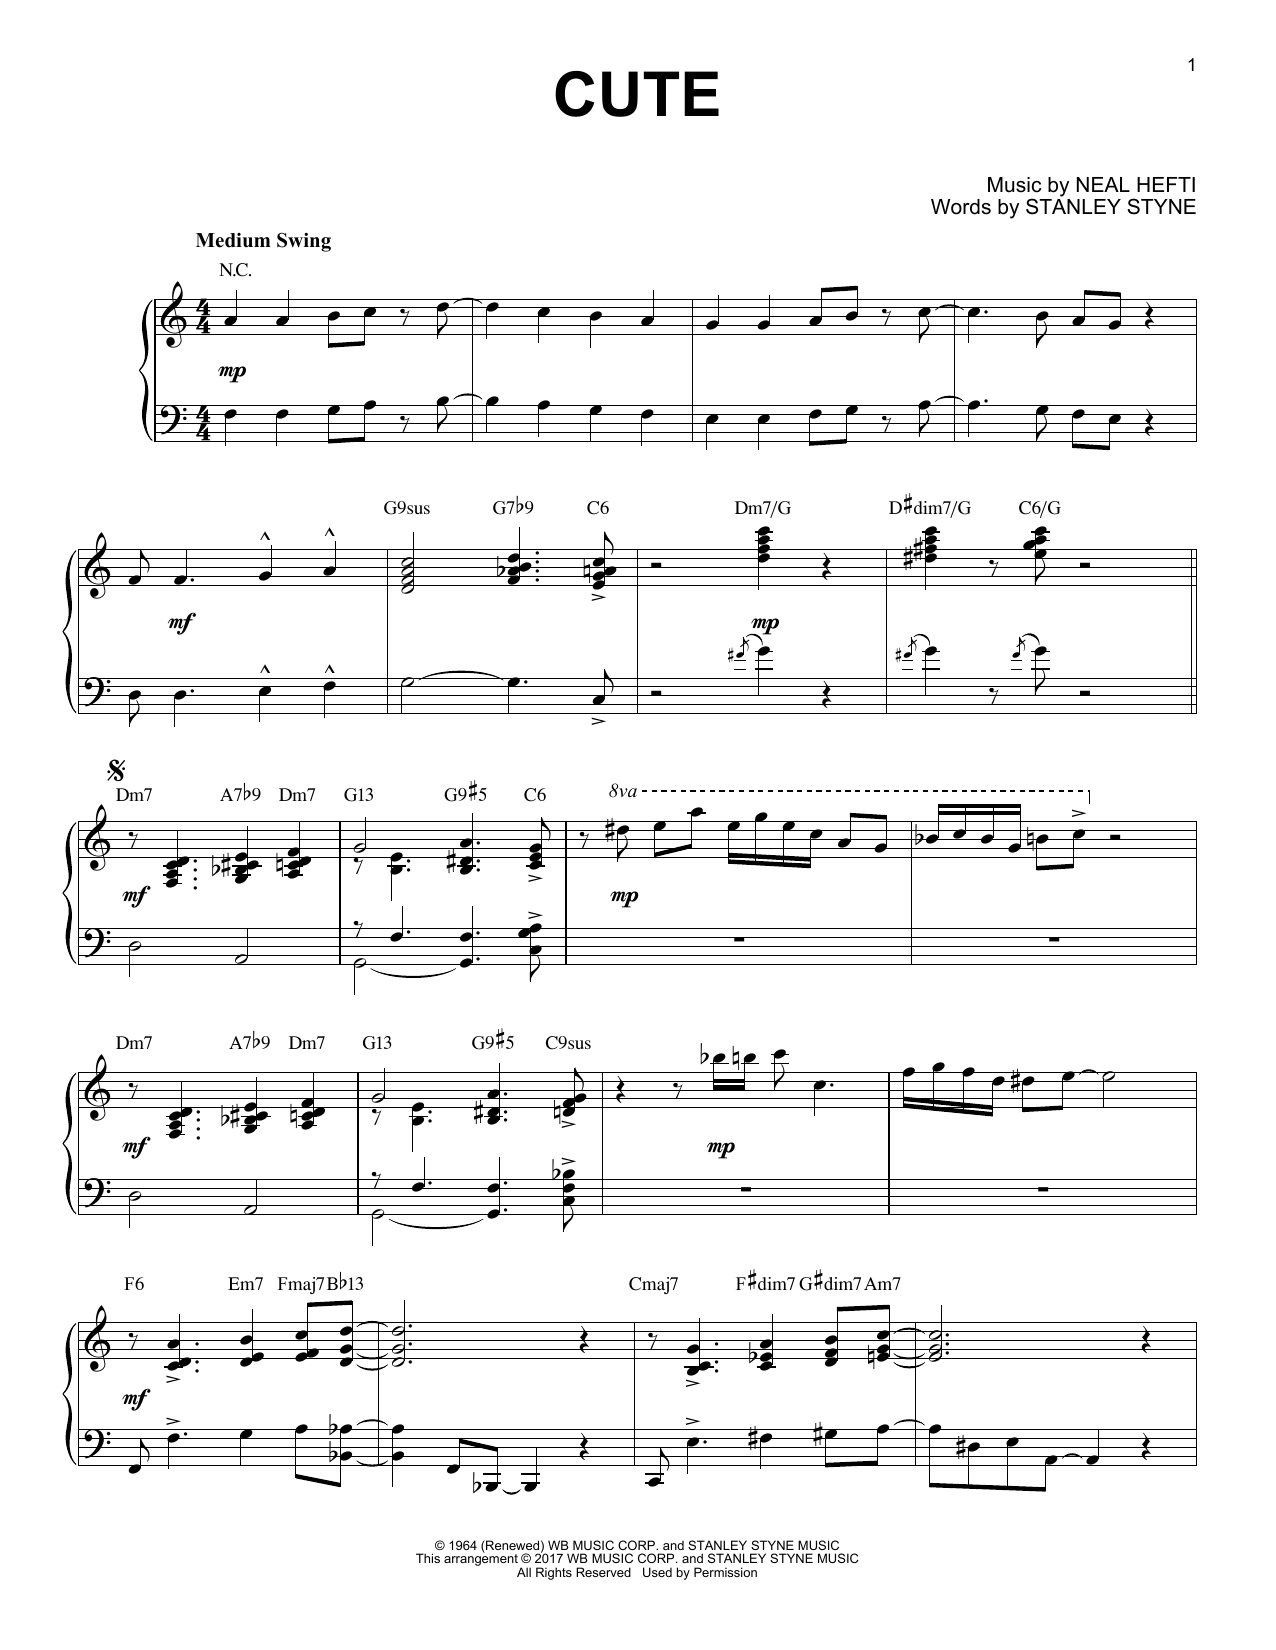 Download Count Basie 'Cute' Digital Sheet Music Notes & Chords and start playing in minutes